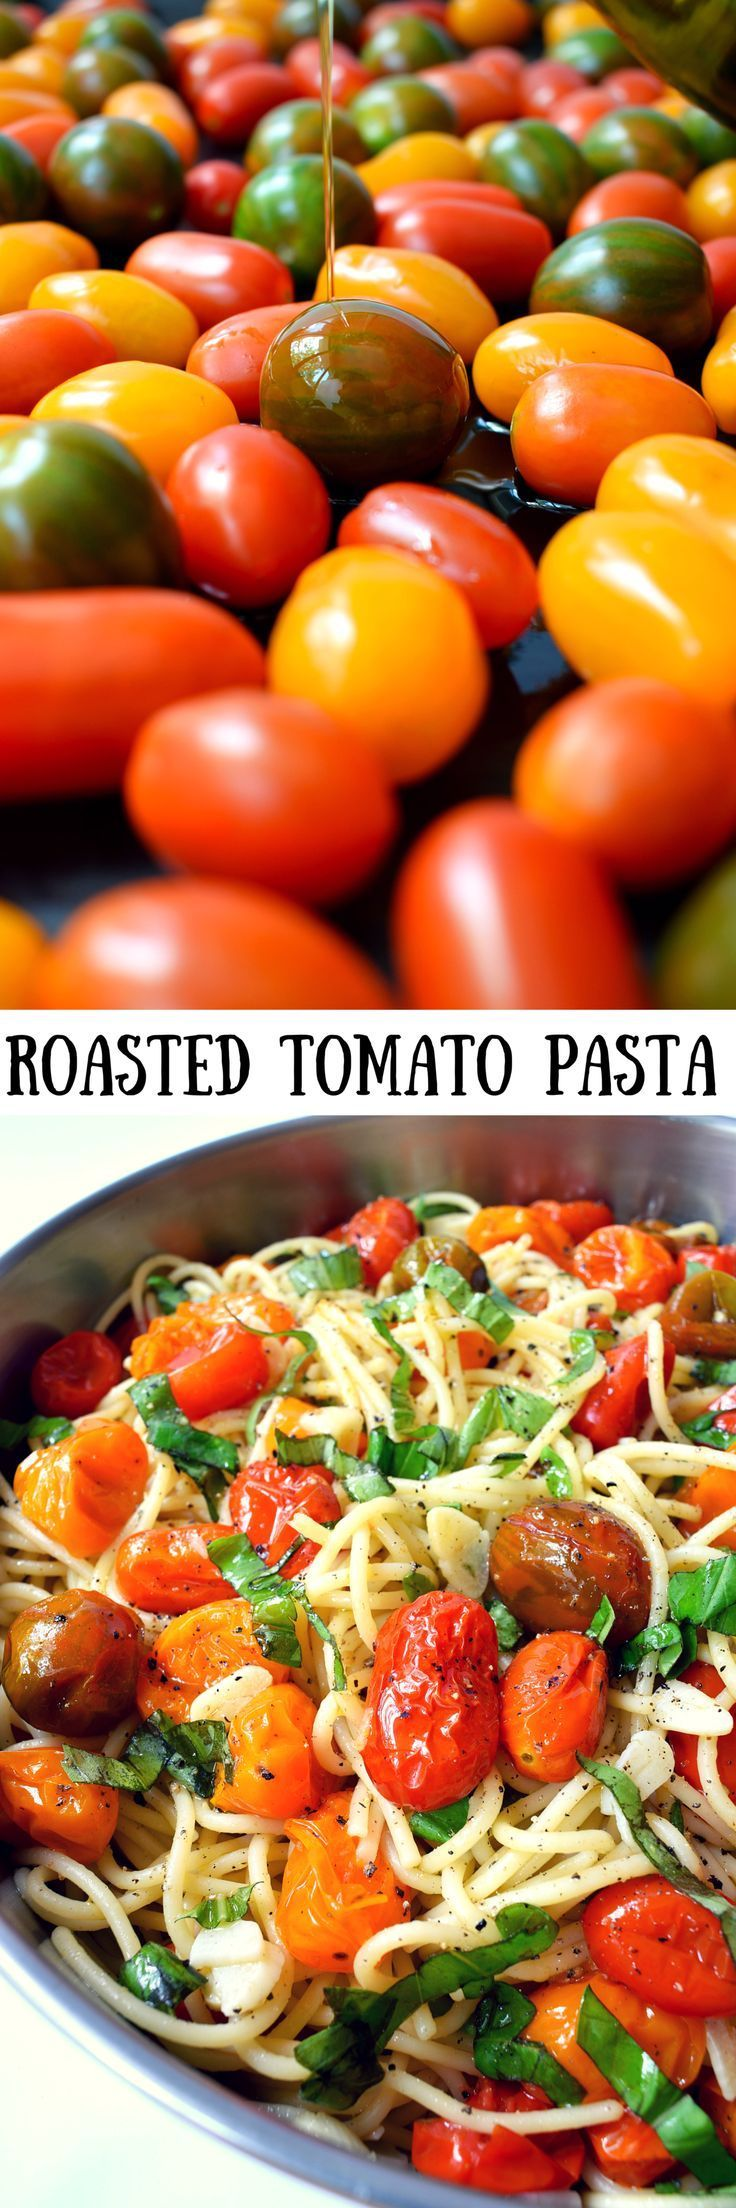 This recipe for vegan roasted tomato pasta with garlic and basil is so easy it could go under the category of cooking for dummies. Go ahead and try to stuff it up, I dare you. You'll need a grand total of seven ingredients and just twenty-five minutes to get this simple and colourful dish on the table.